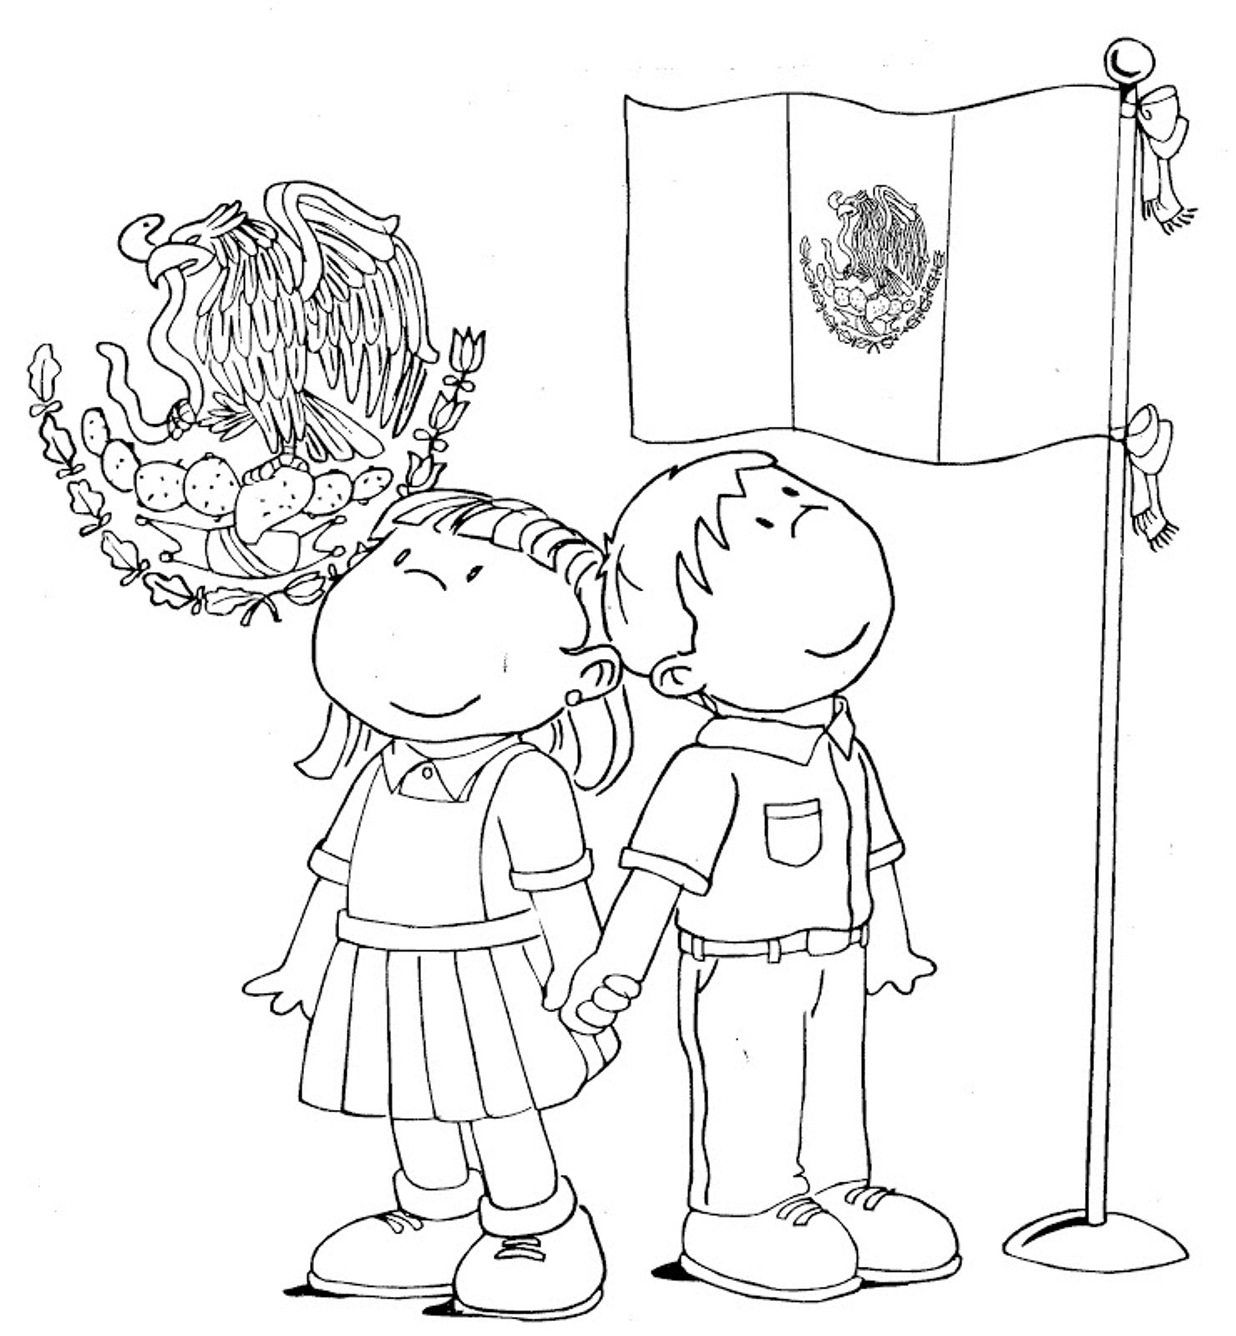 Flags Coloring Mexican Flag Coloring Page Mexican Flag Coloring Pagefull Size Image Bandera De Mexico Dibujo Dia De La Bandera Imagenes De Banderas